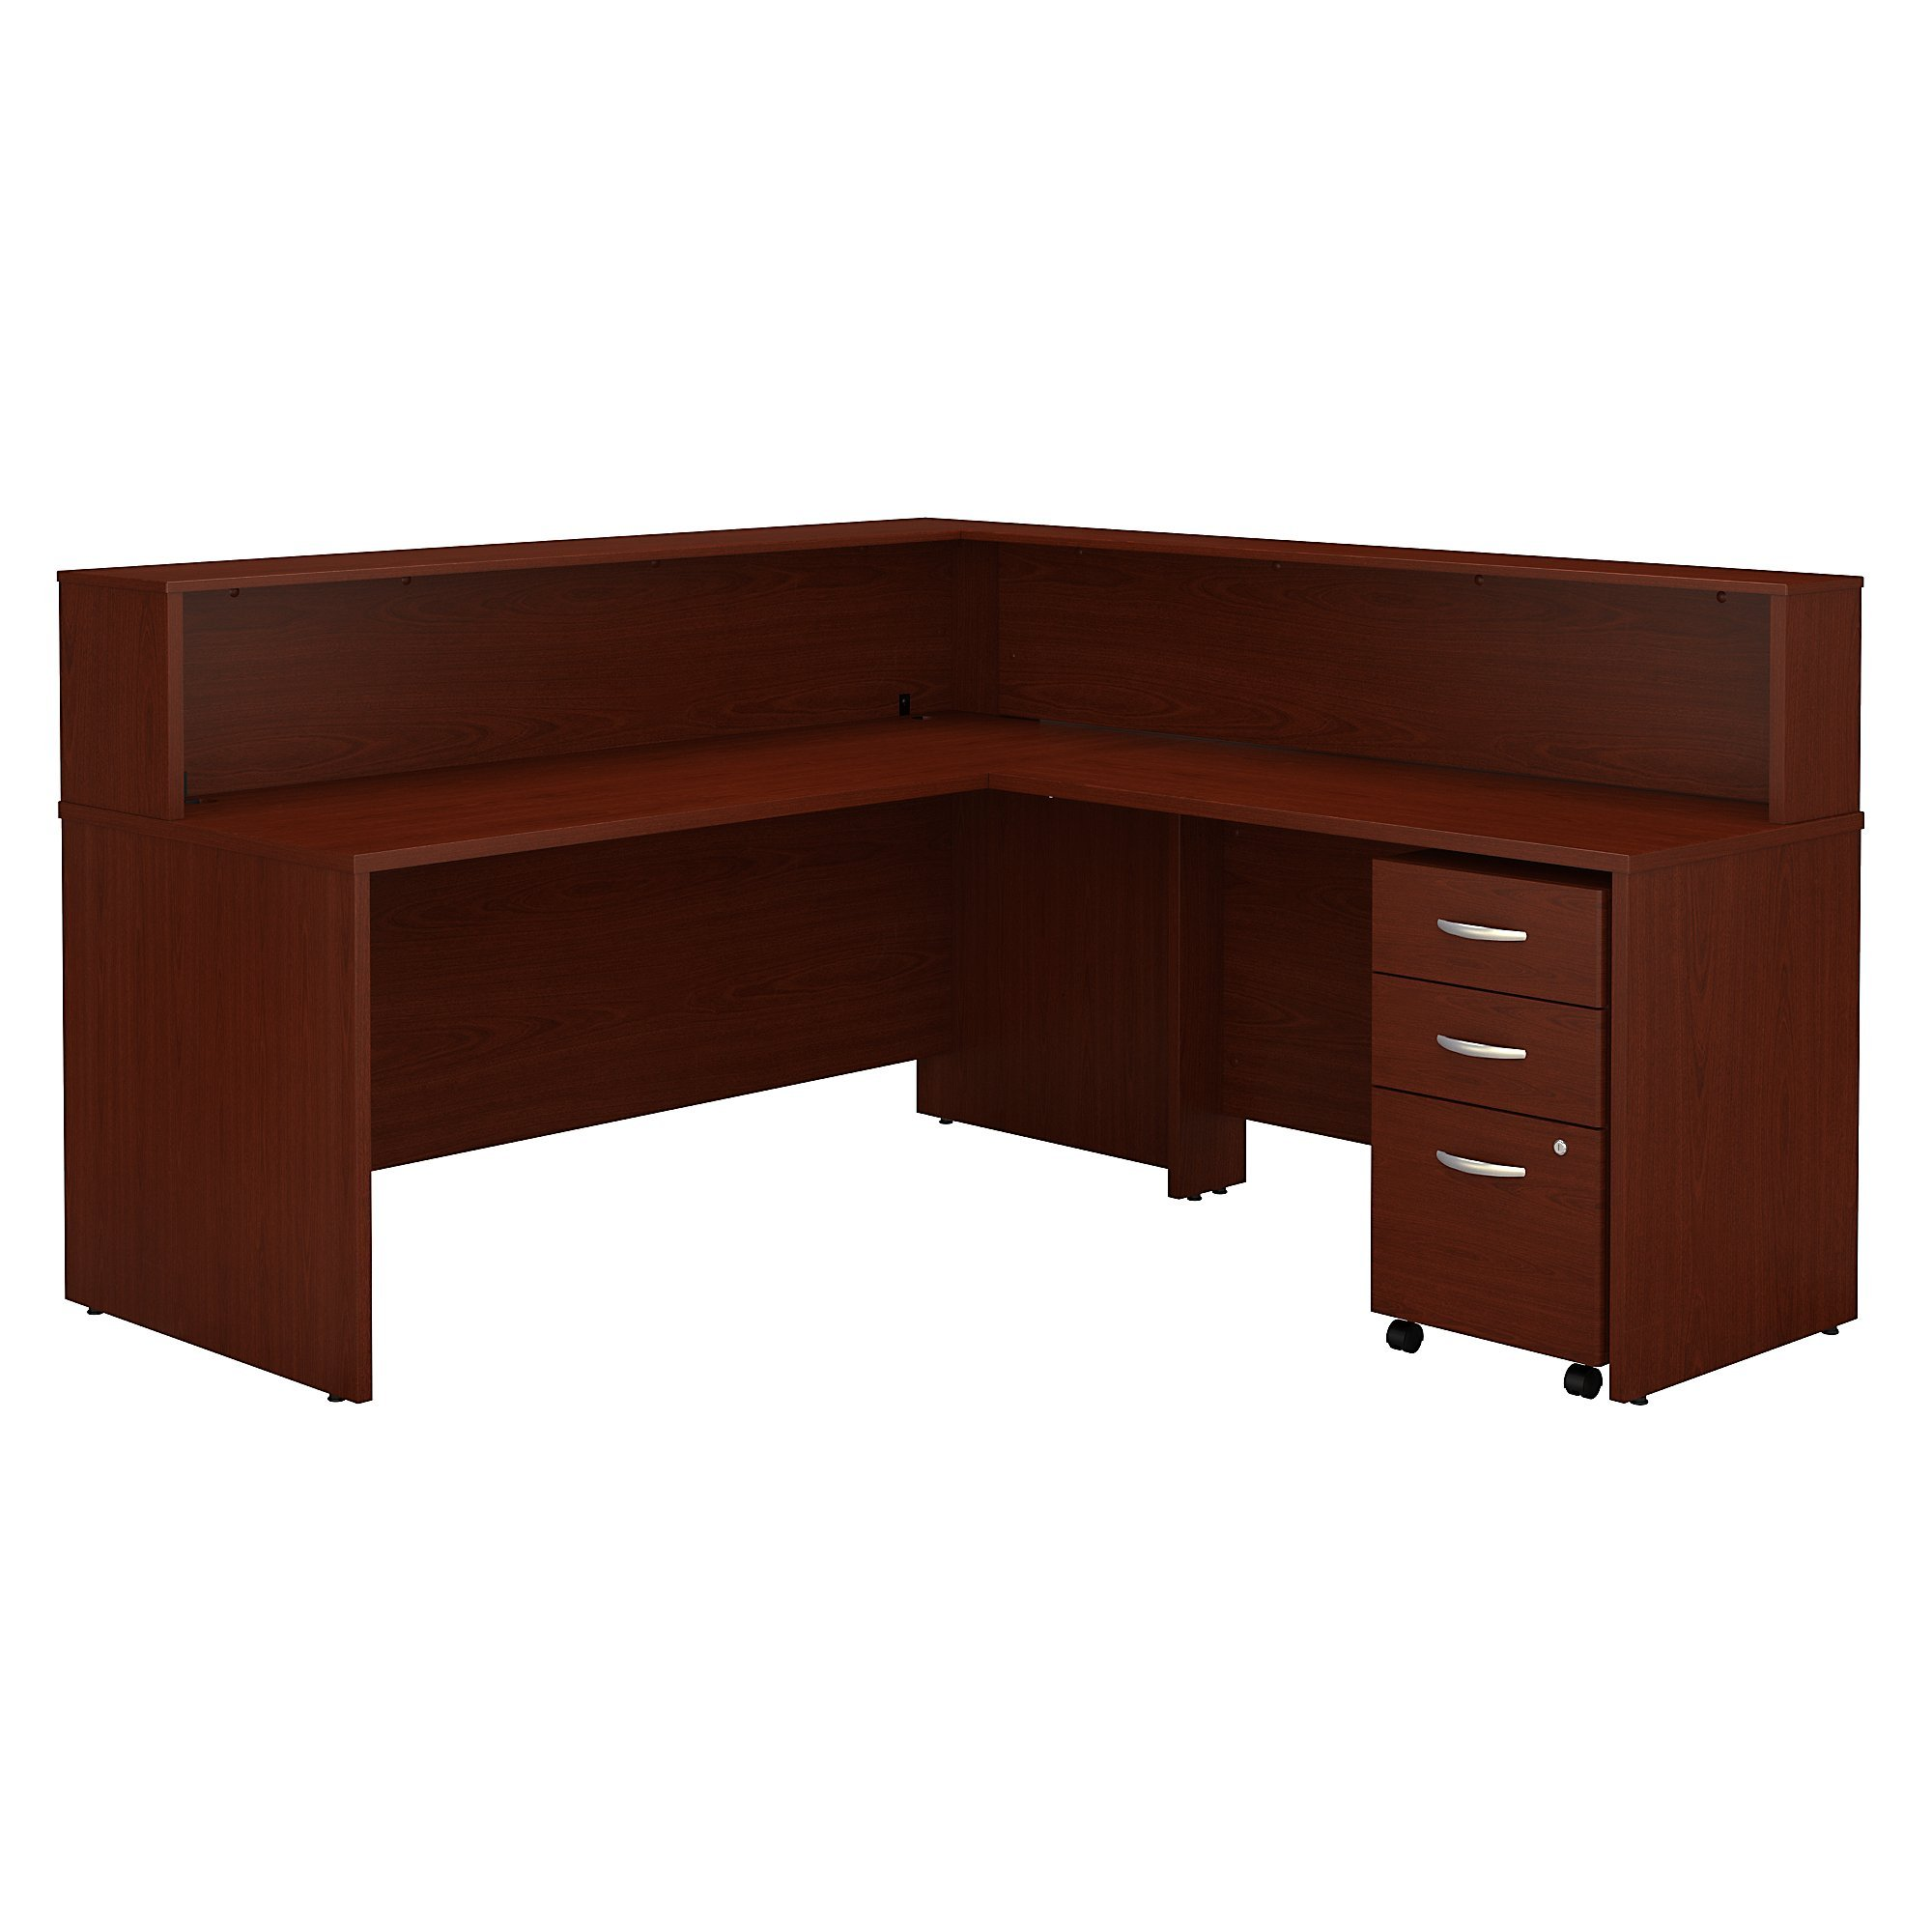 Bush Business Furniture Series C L Shaped Reception Desk with Mobile File Cabinet in Mahogany by Bush Business Furniture (Image #1)